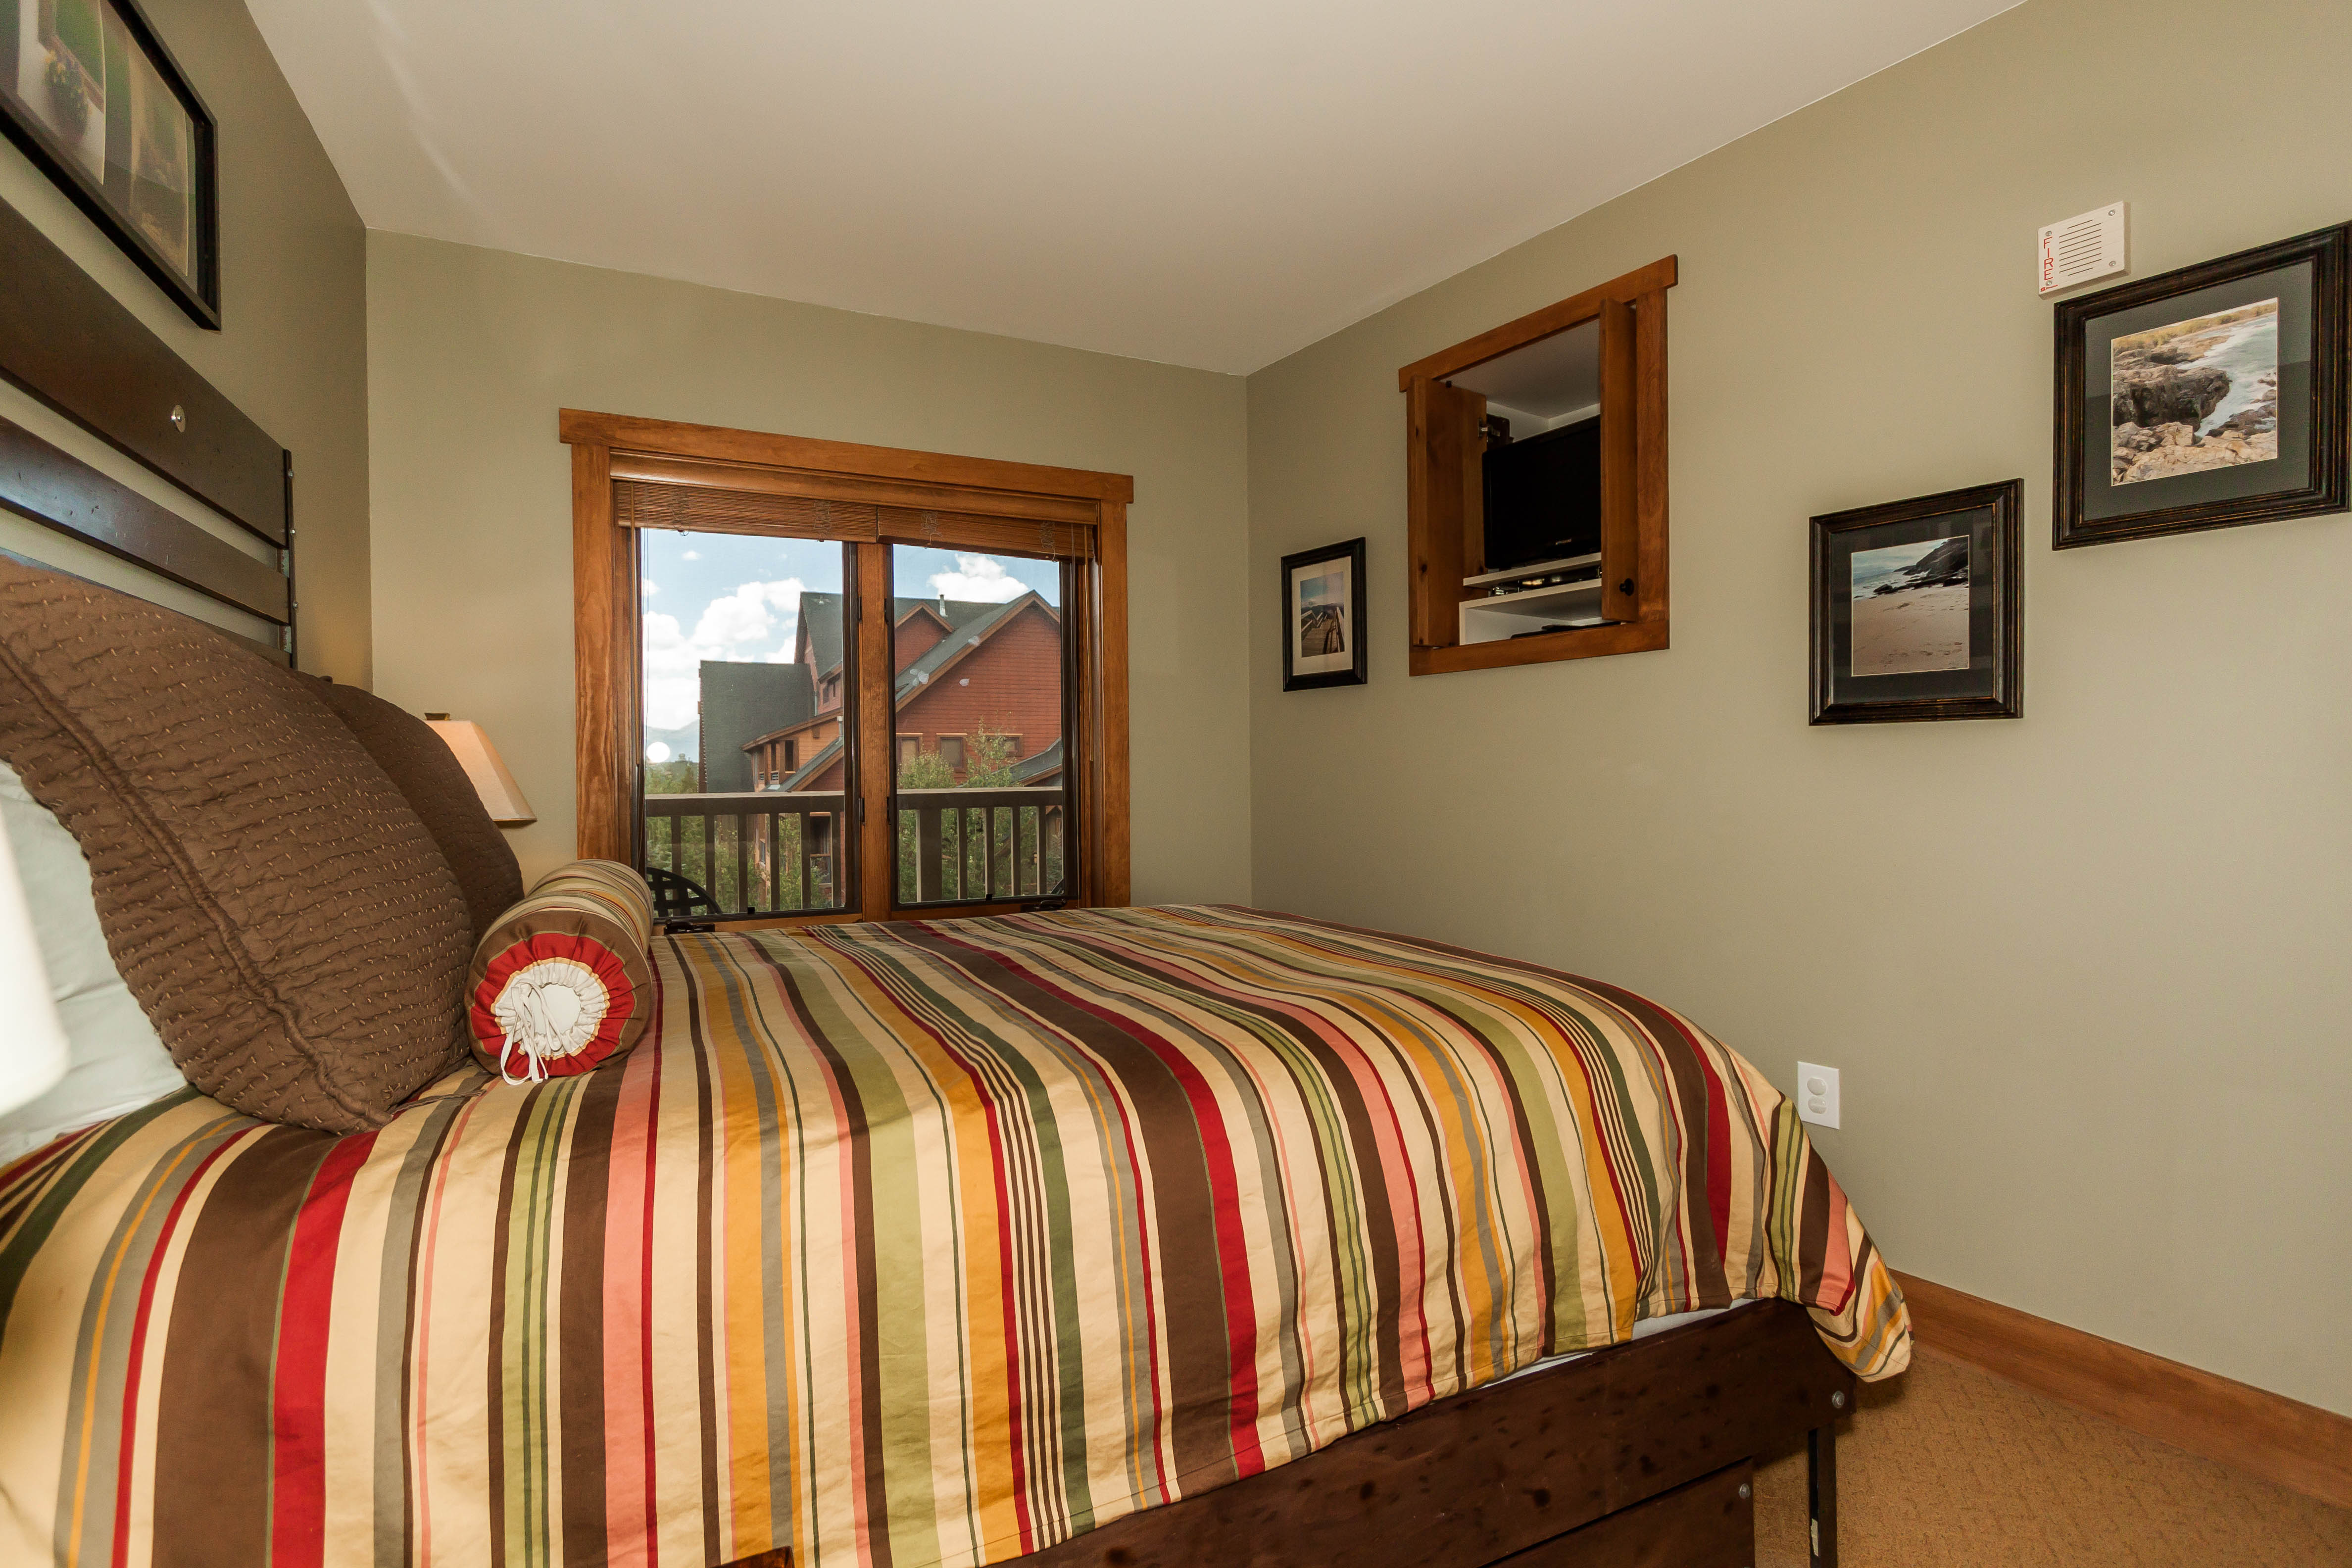 The bedroom features a queen-sized and a flat screen TV.